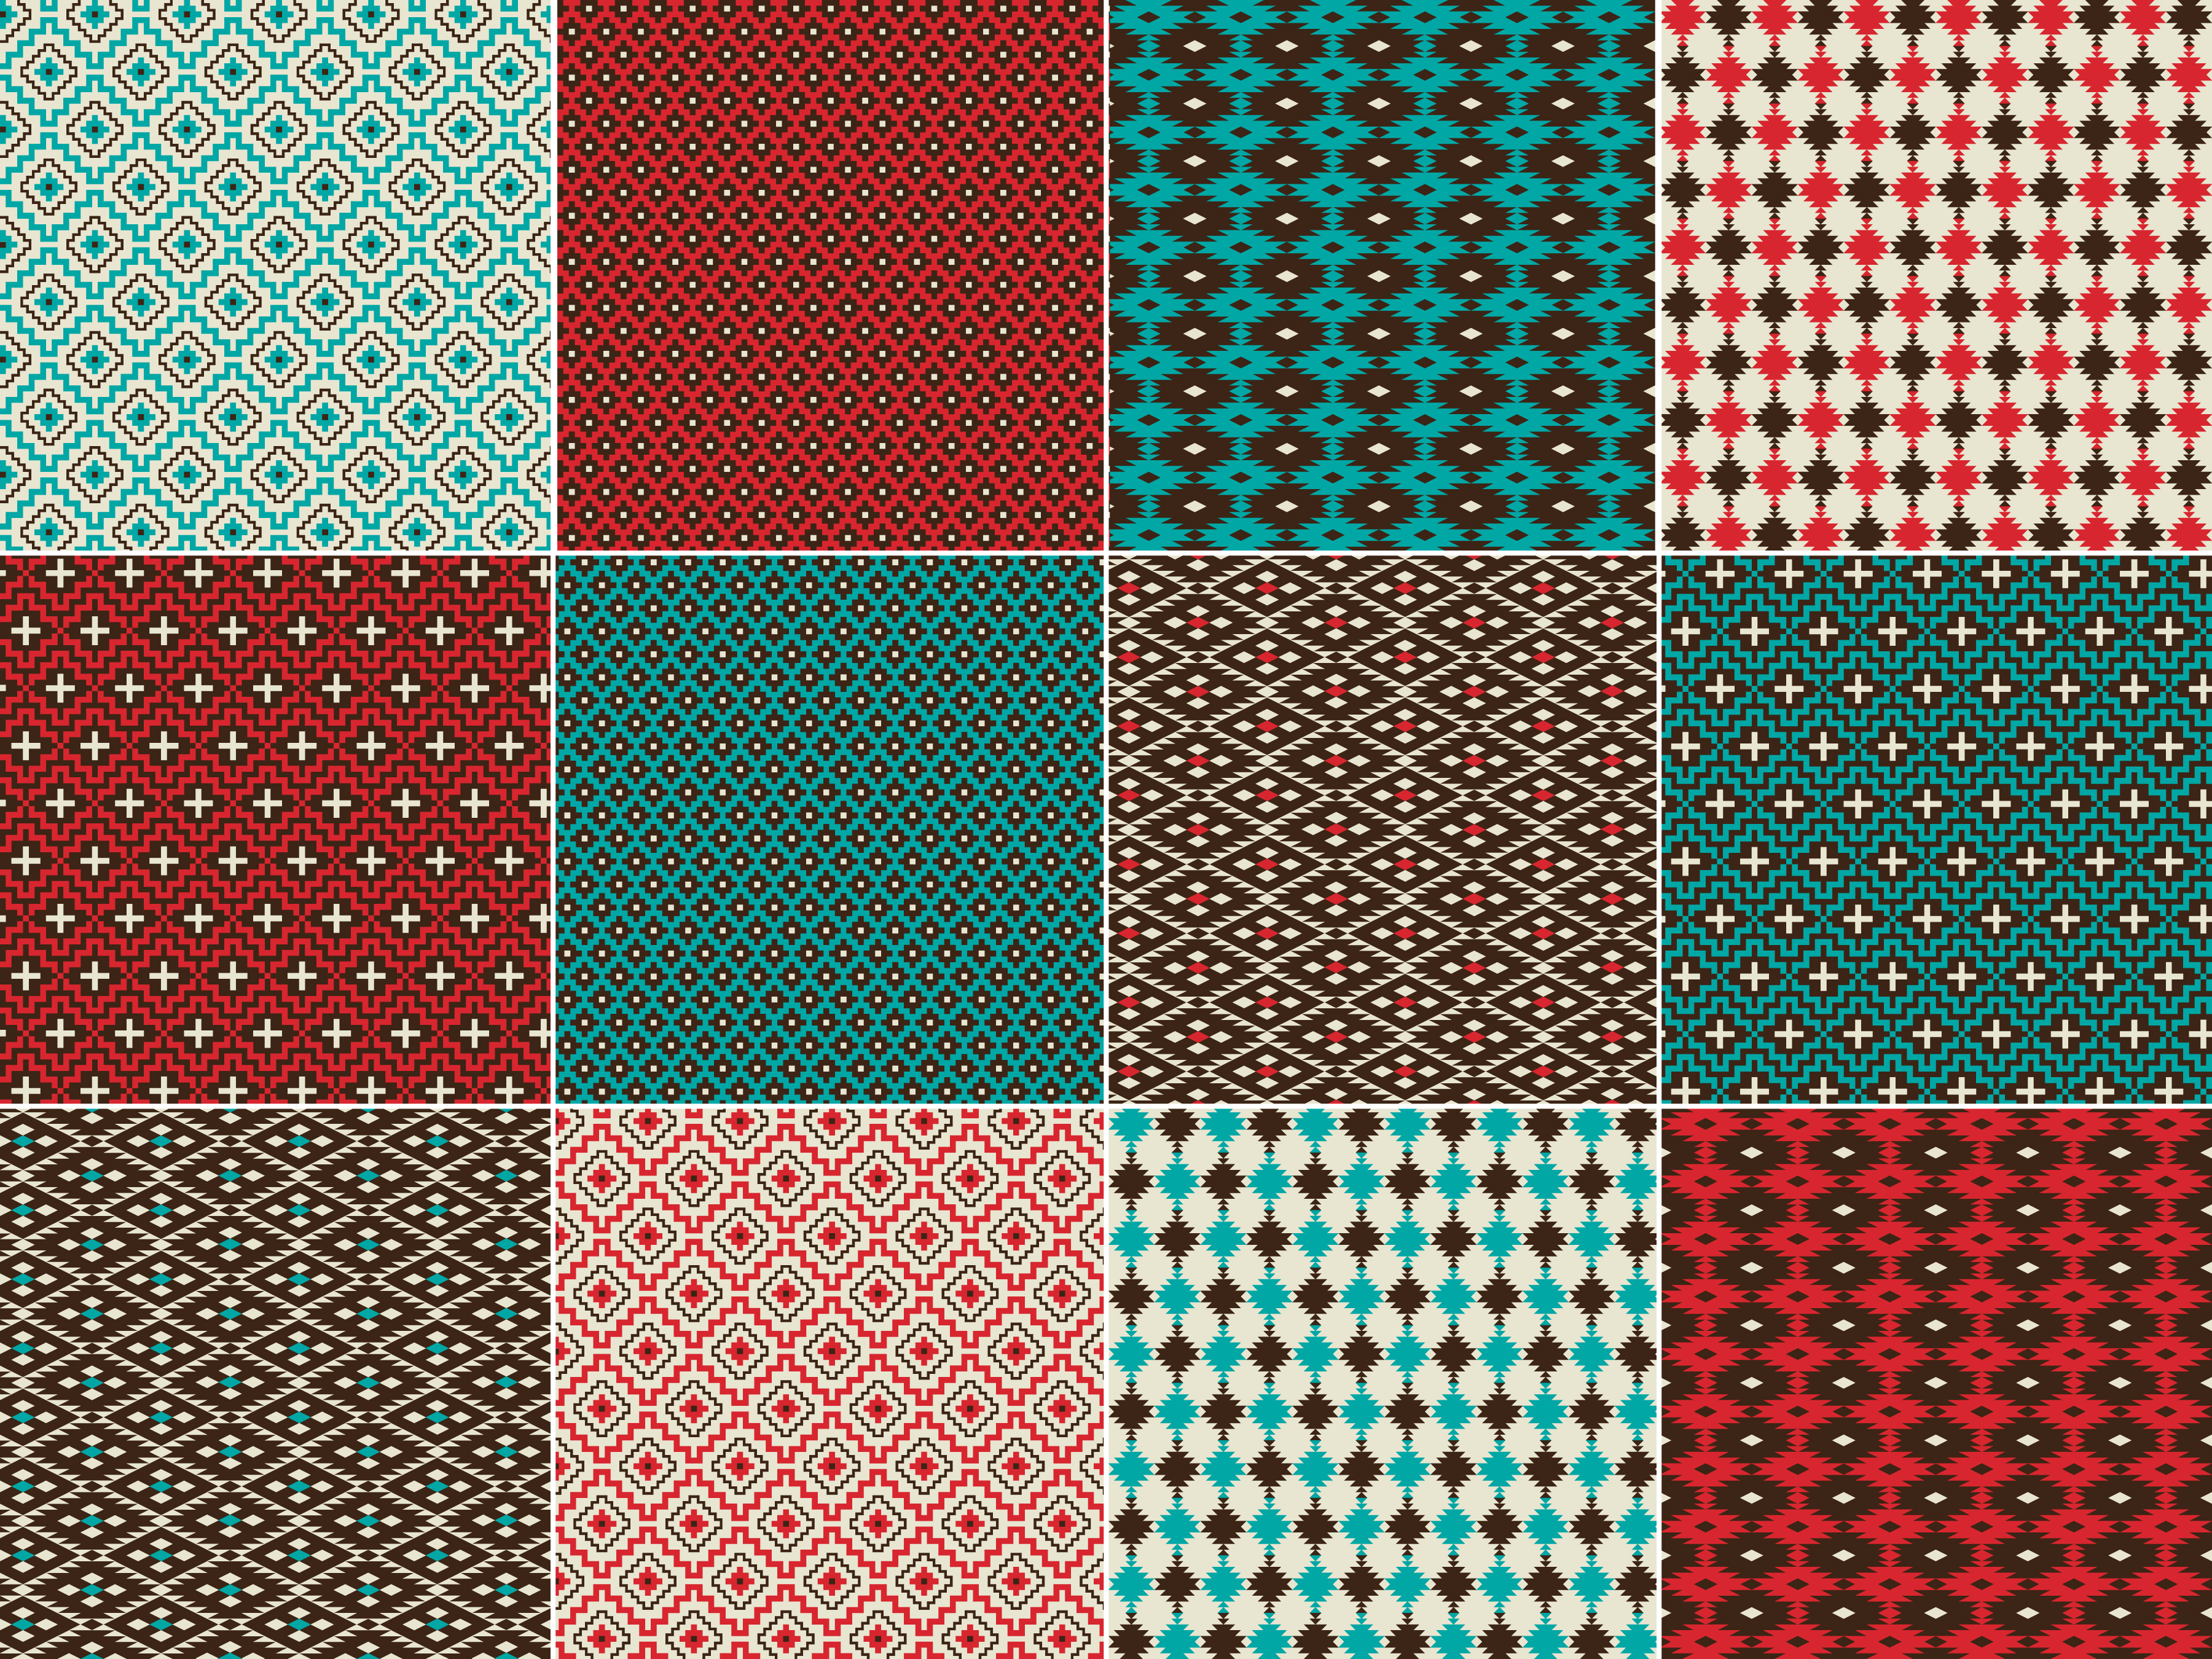 Native American Inspired Geometric Patterns Download